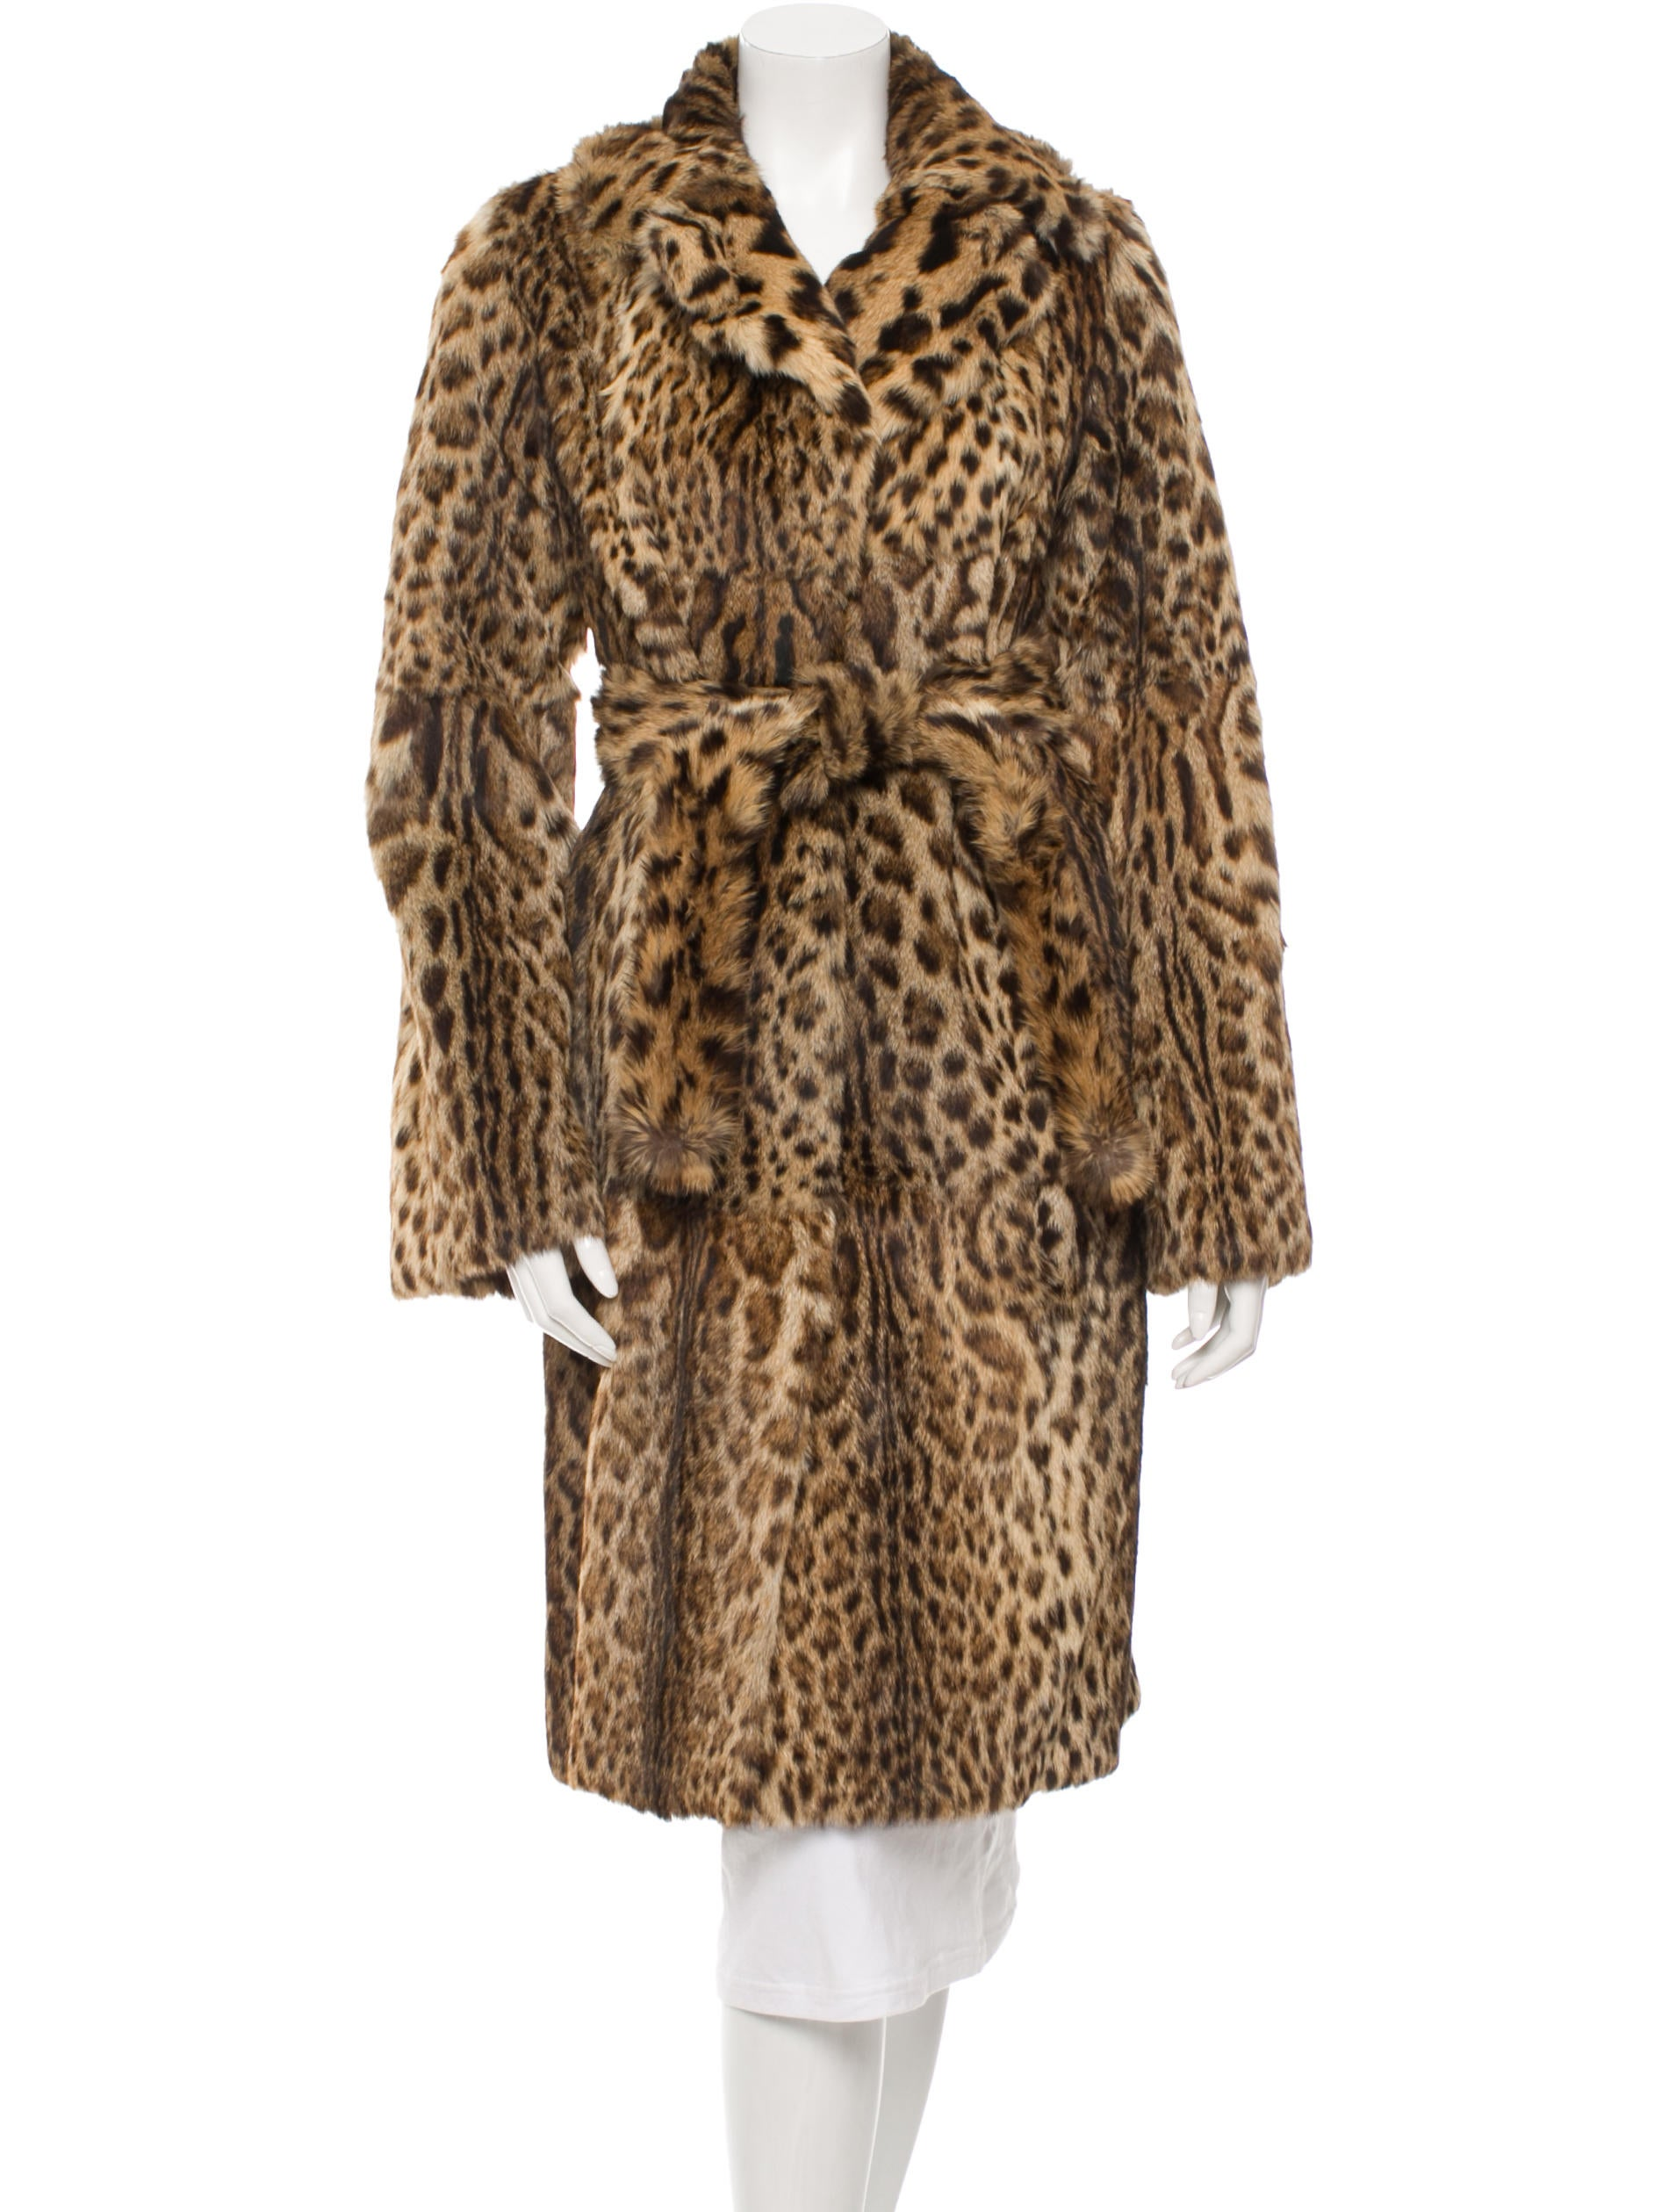 neiman marcus fur coat clothing nemrc20053 the realreal. Black Bedroom Furniture Sets. Home Design Ideas